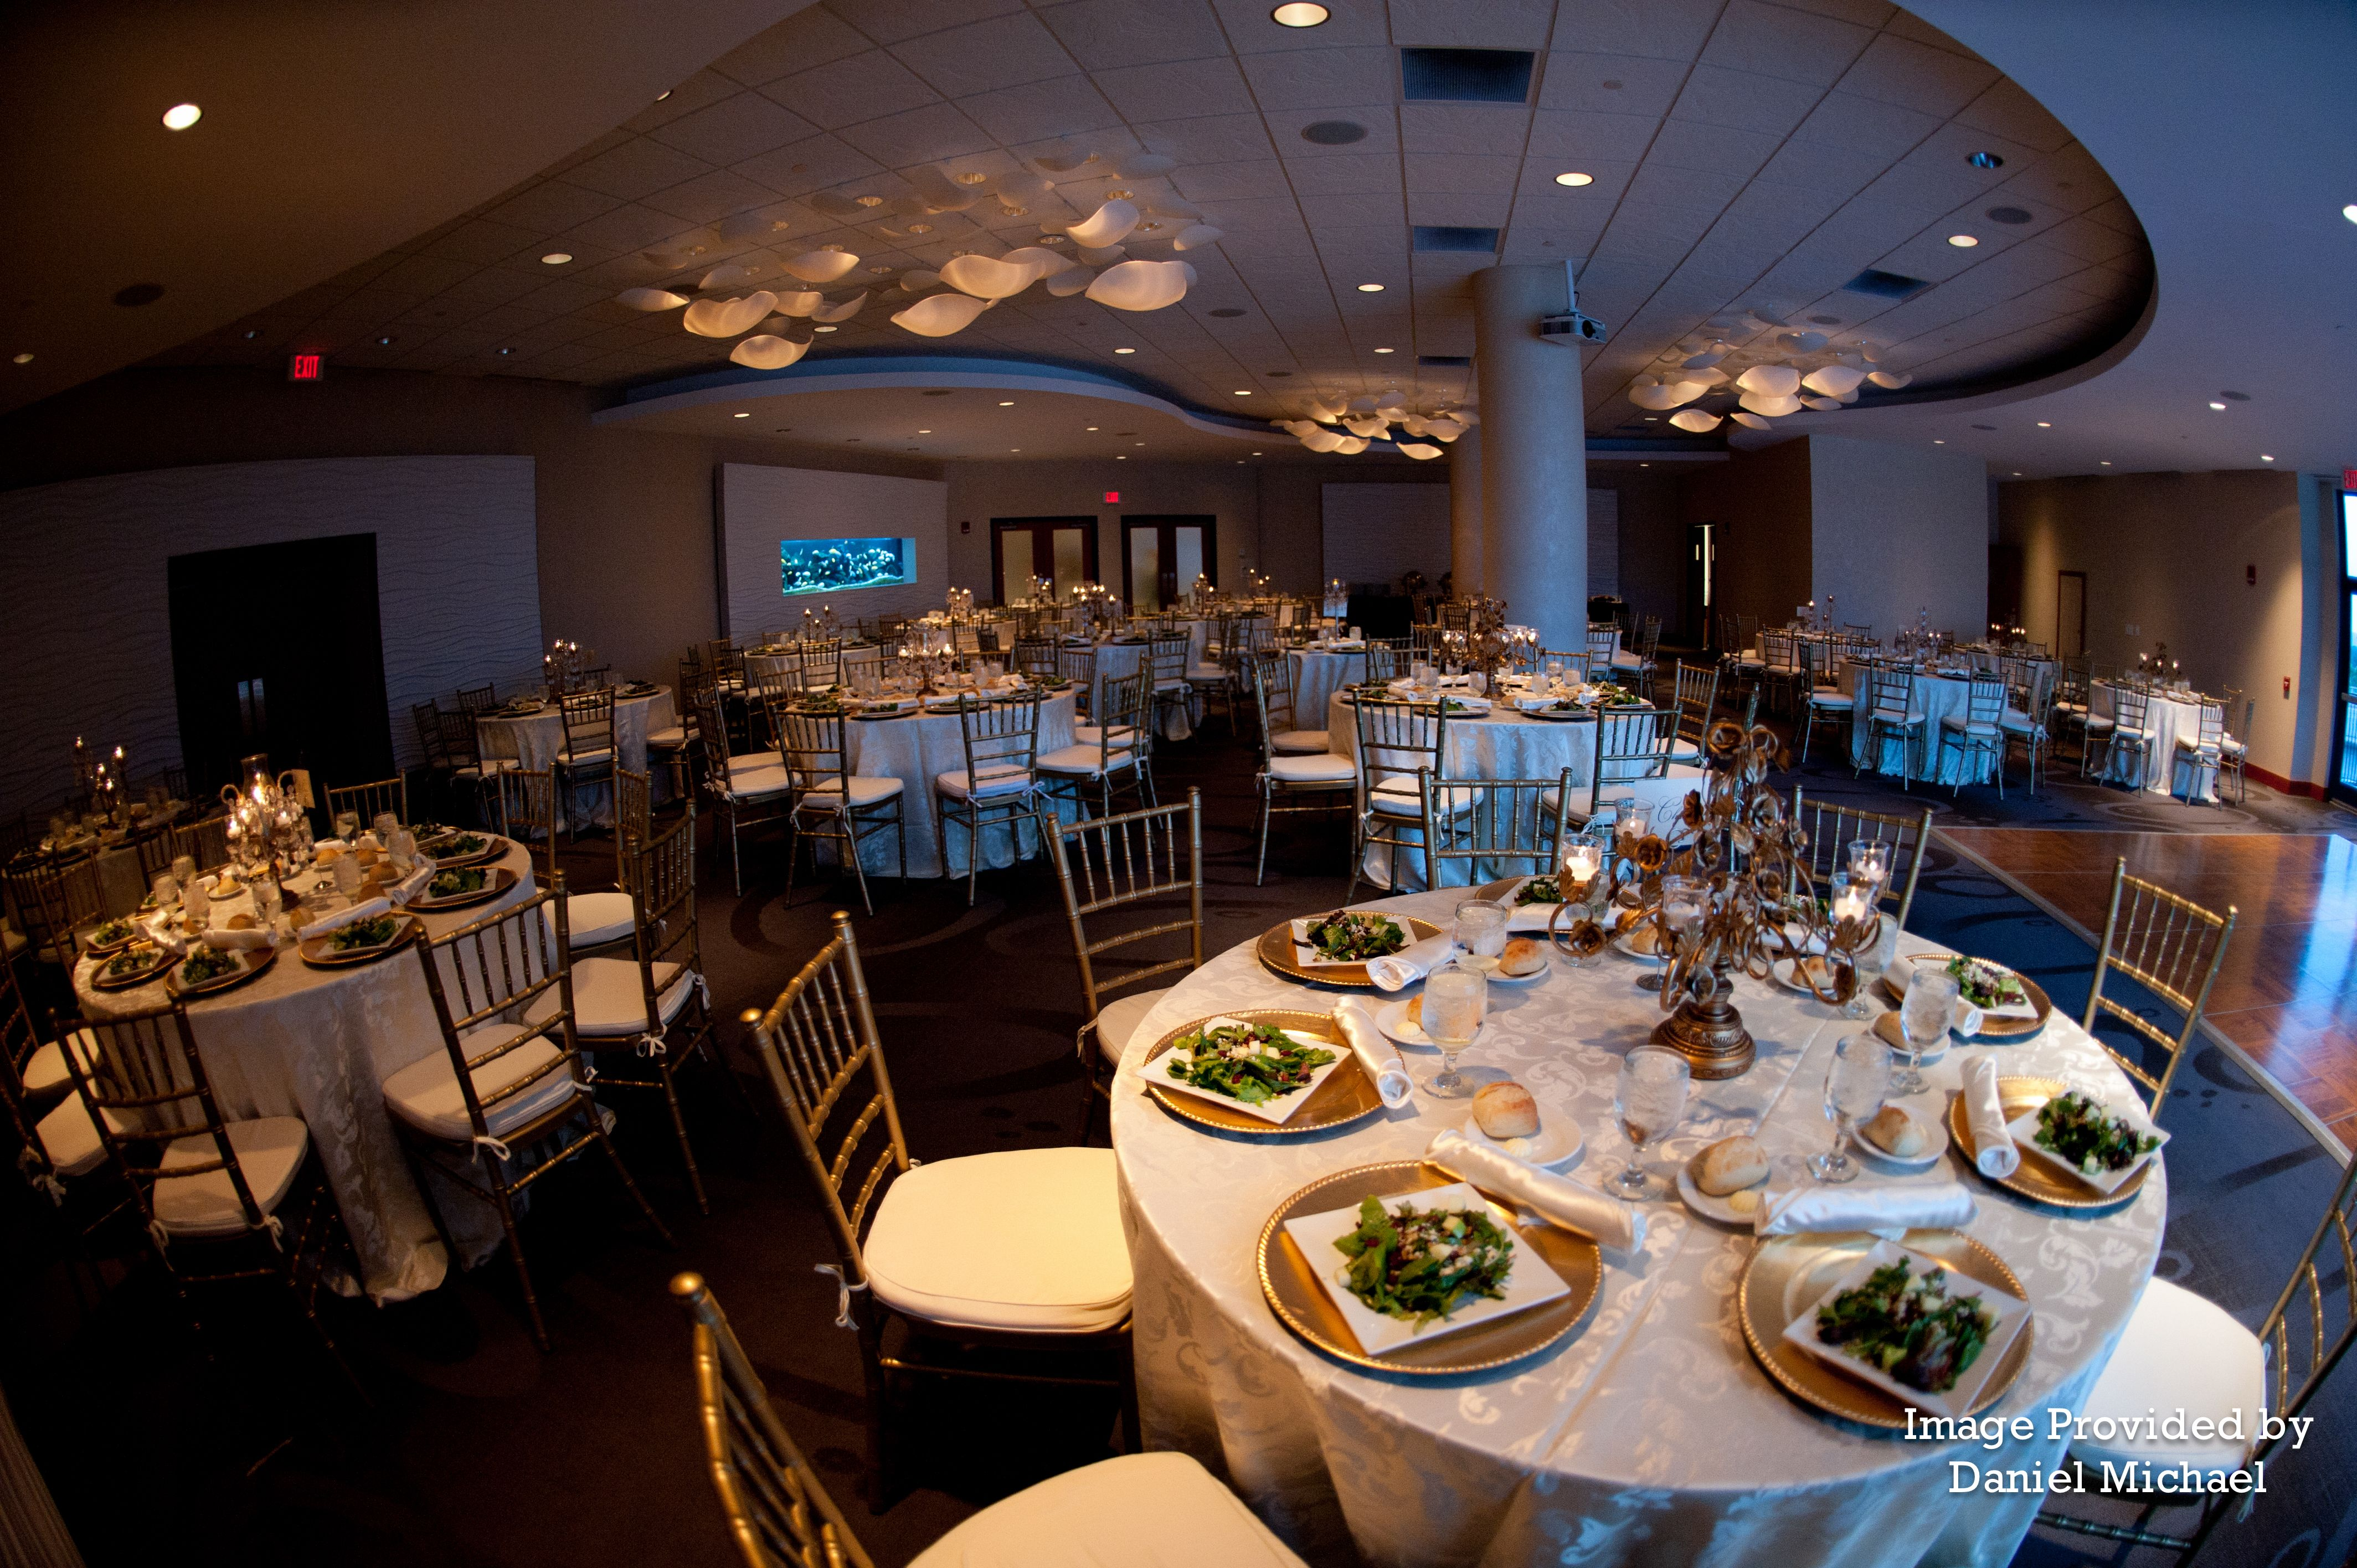 The Riverside Room At Newport Aquarium Is A 6 000 Square Foot Meeting Conference And Special Event Venue With Capacity For 240 Person Sit Down